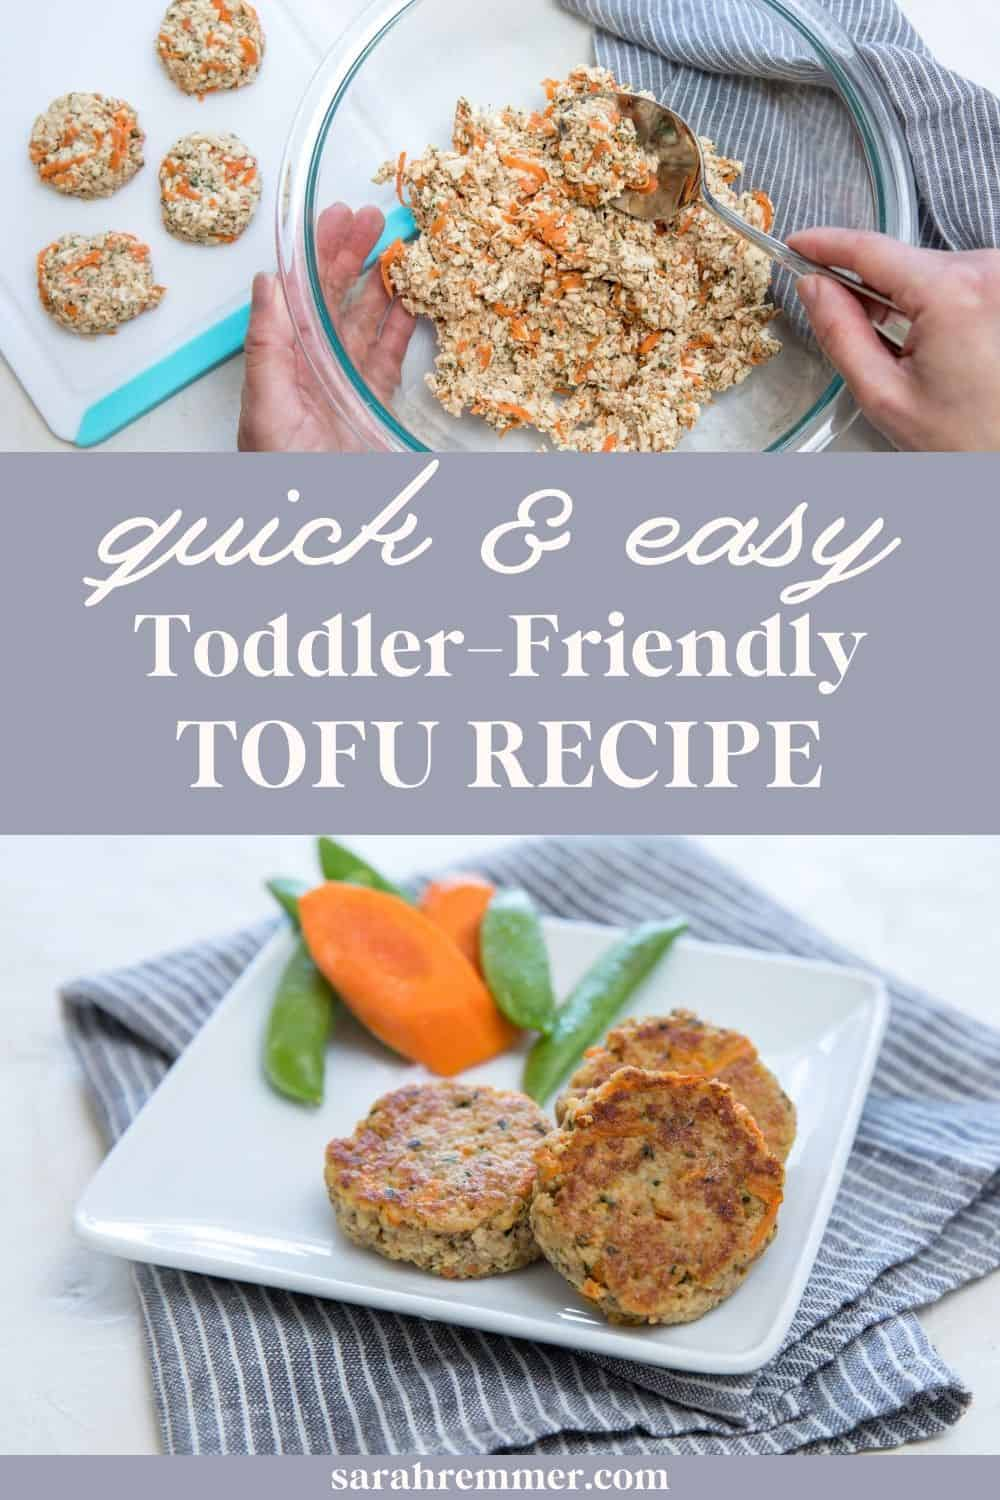 These toddler-friendly tofu nuggets are a surefire hit with kids and adults alike! If you're looking for a party appetizer to bring, this is it.